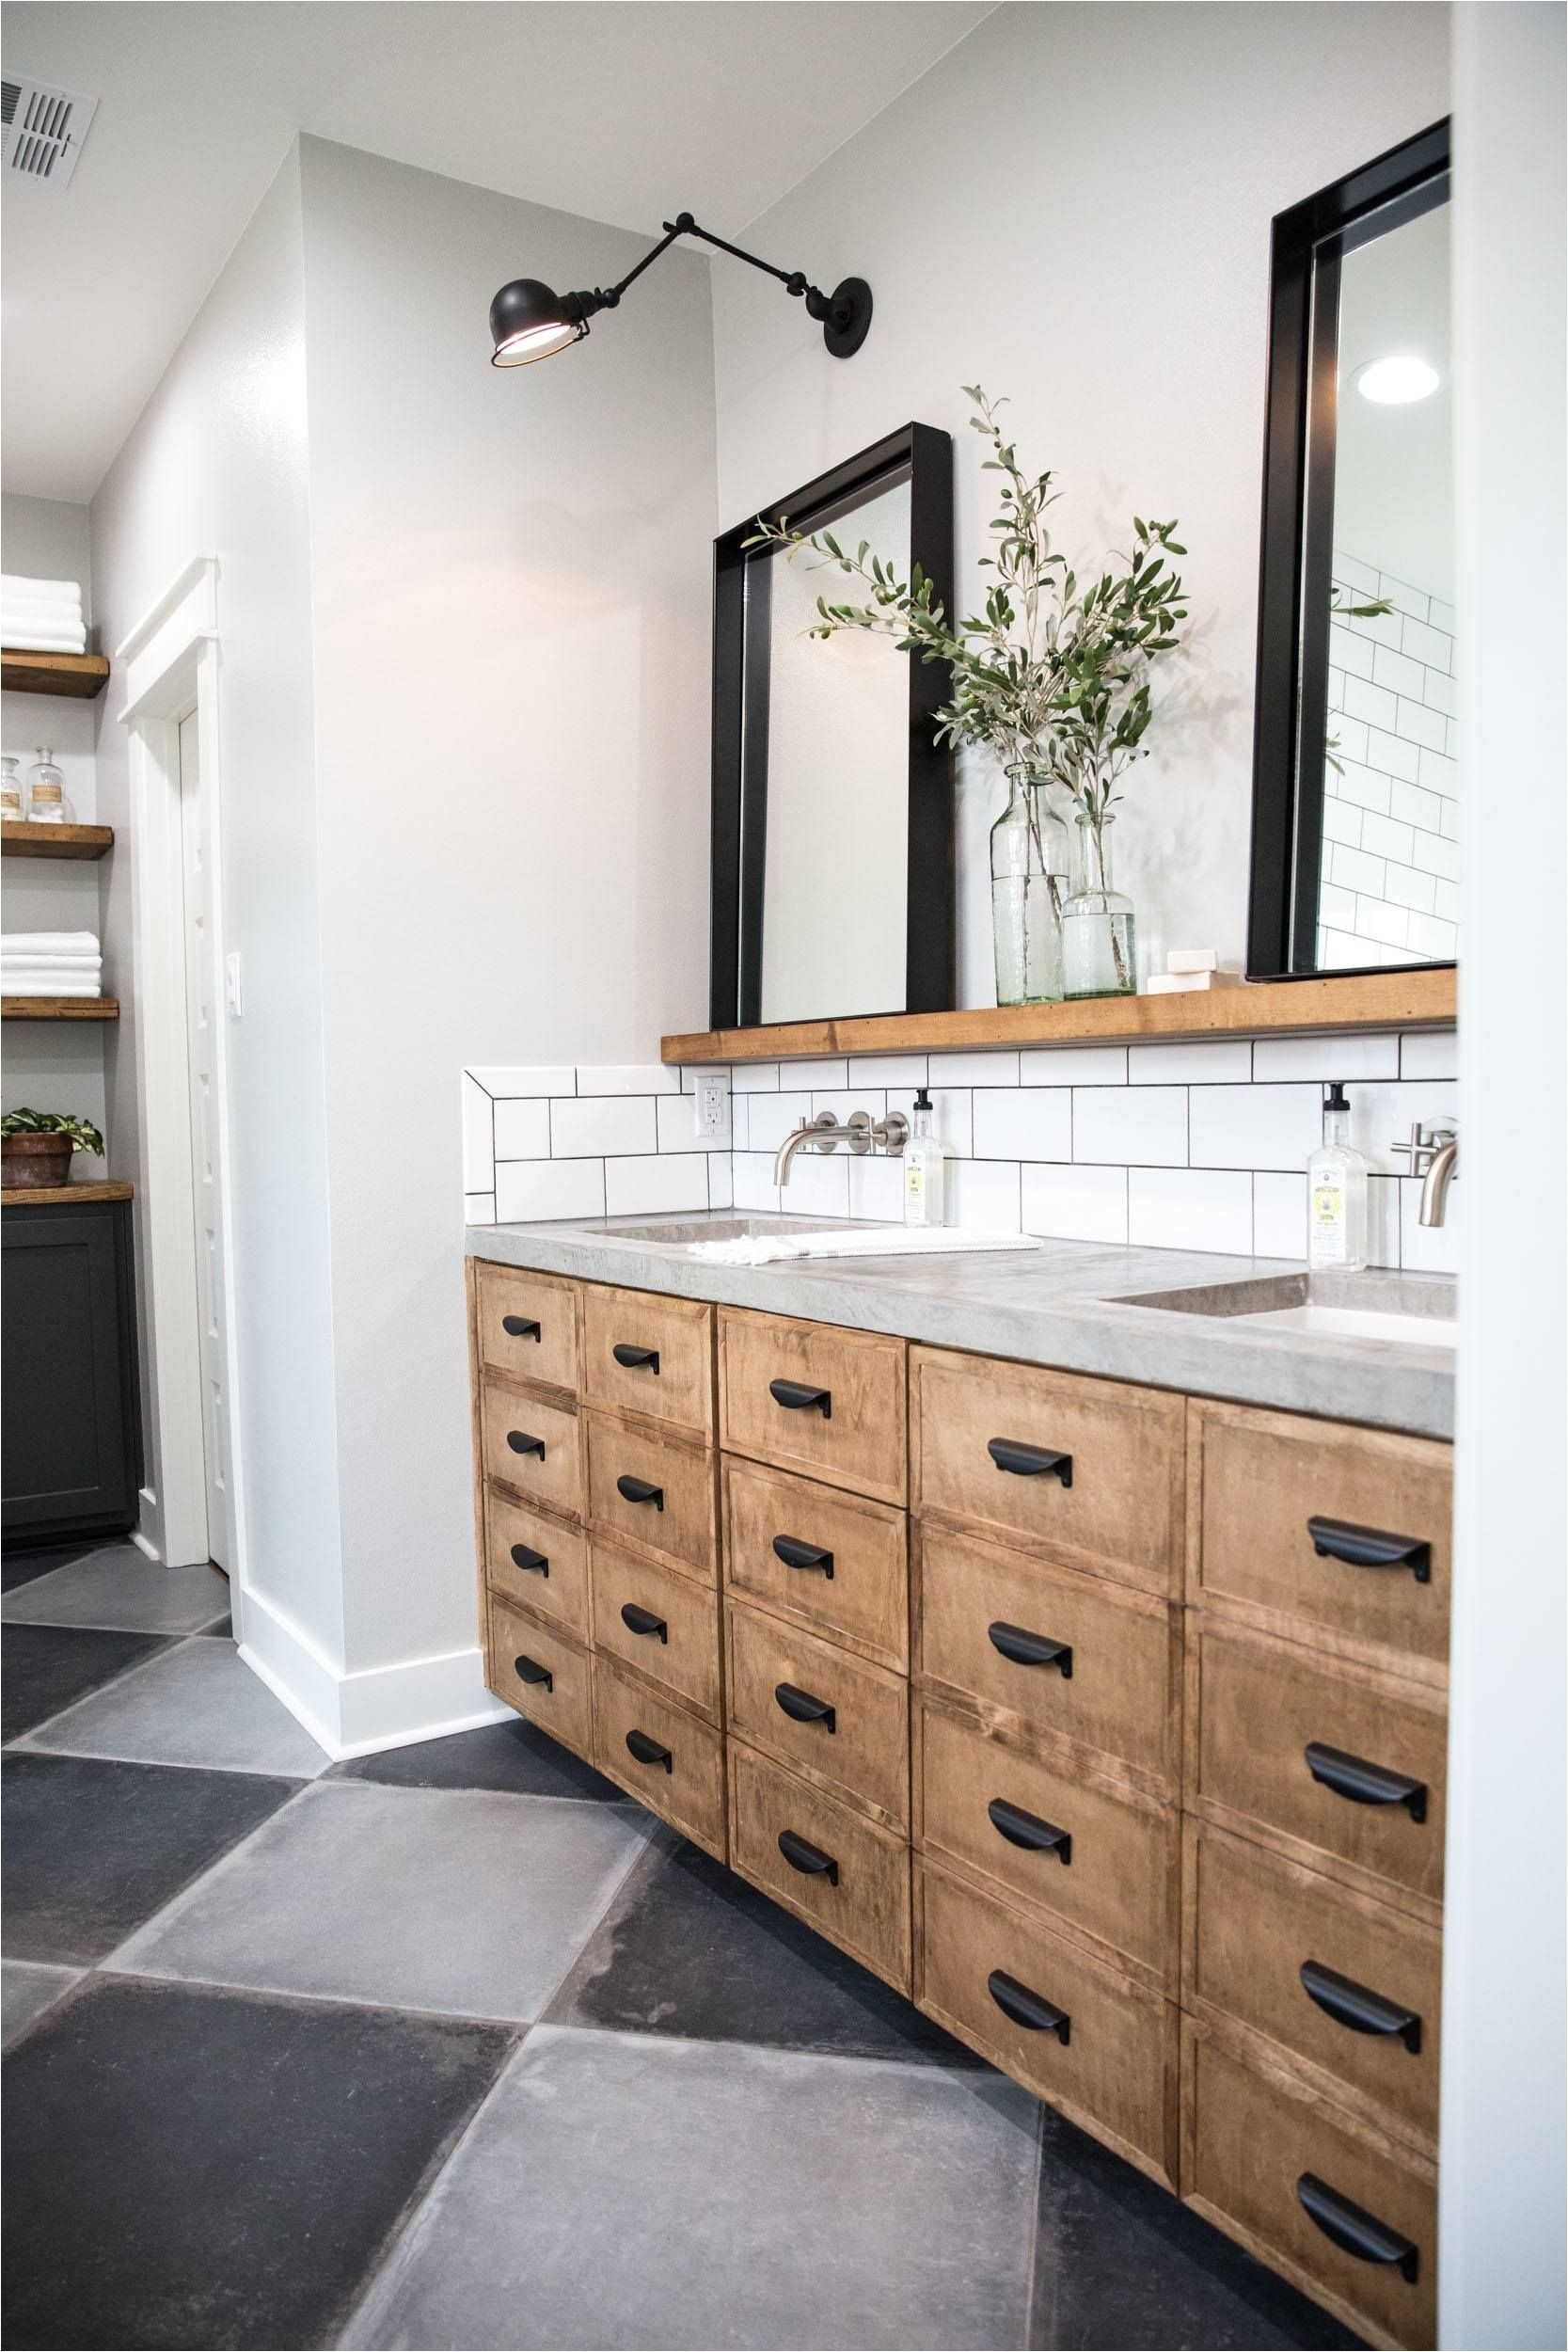 fixer upper season 4 episode 16 the little shack on the prairie chip and joanna gaines waco tx master bathroom